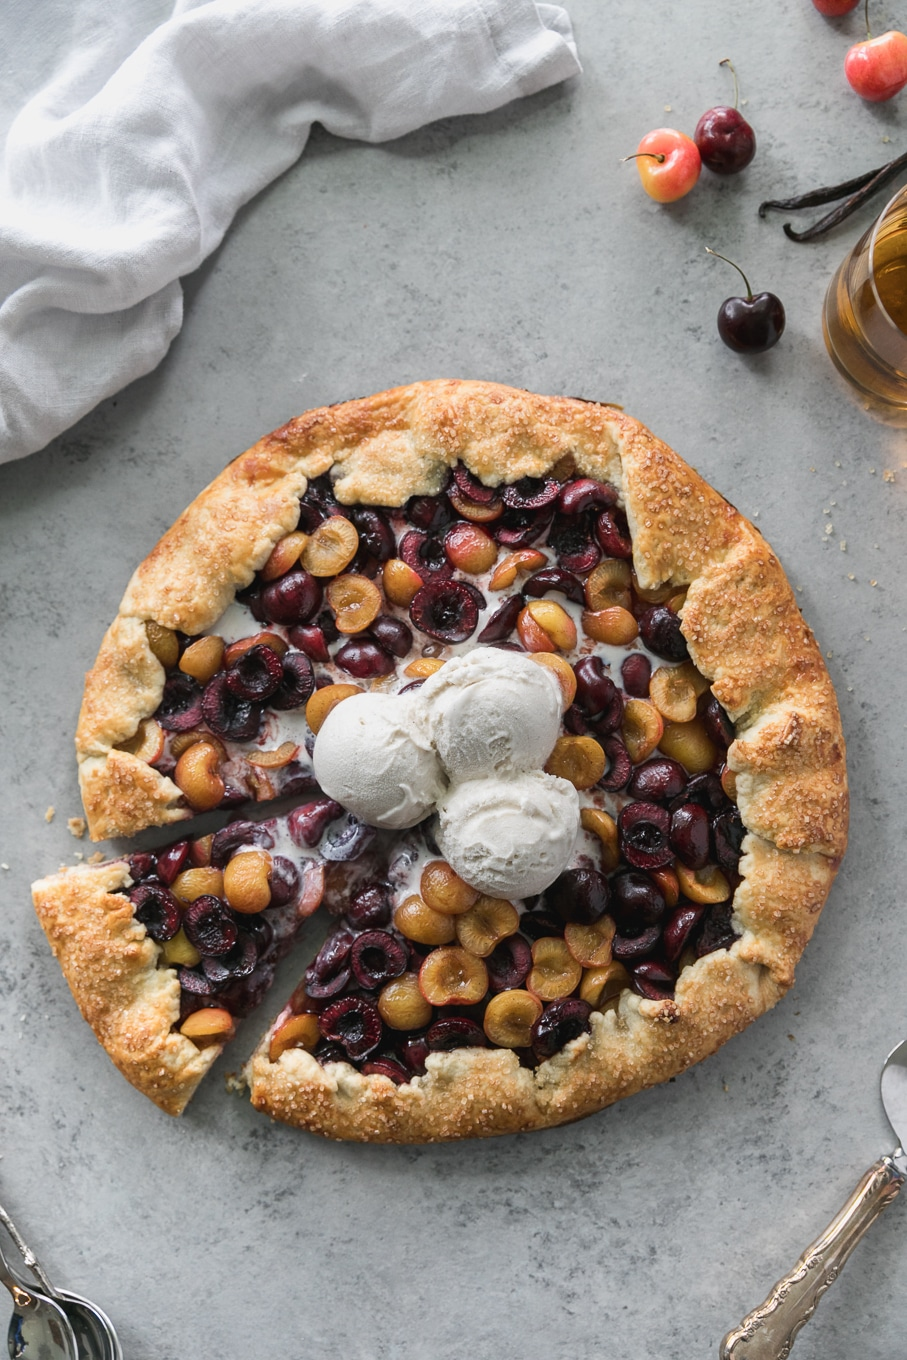 Overhead shot of a cherry galette with 3 scoops of ice cream on top with a slice being taken out